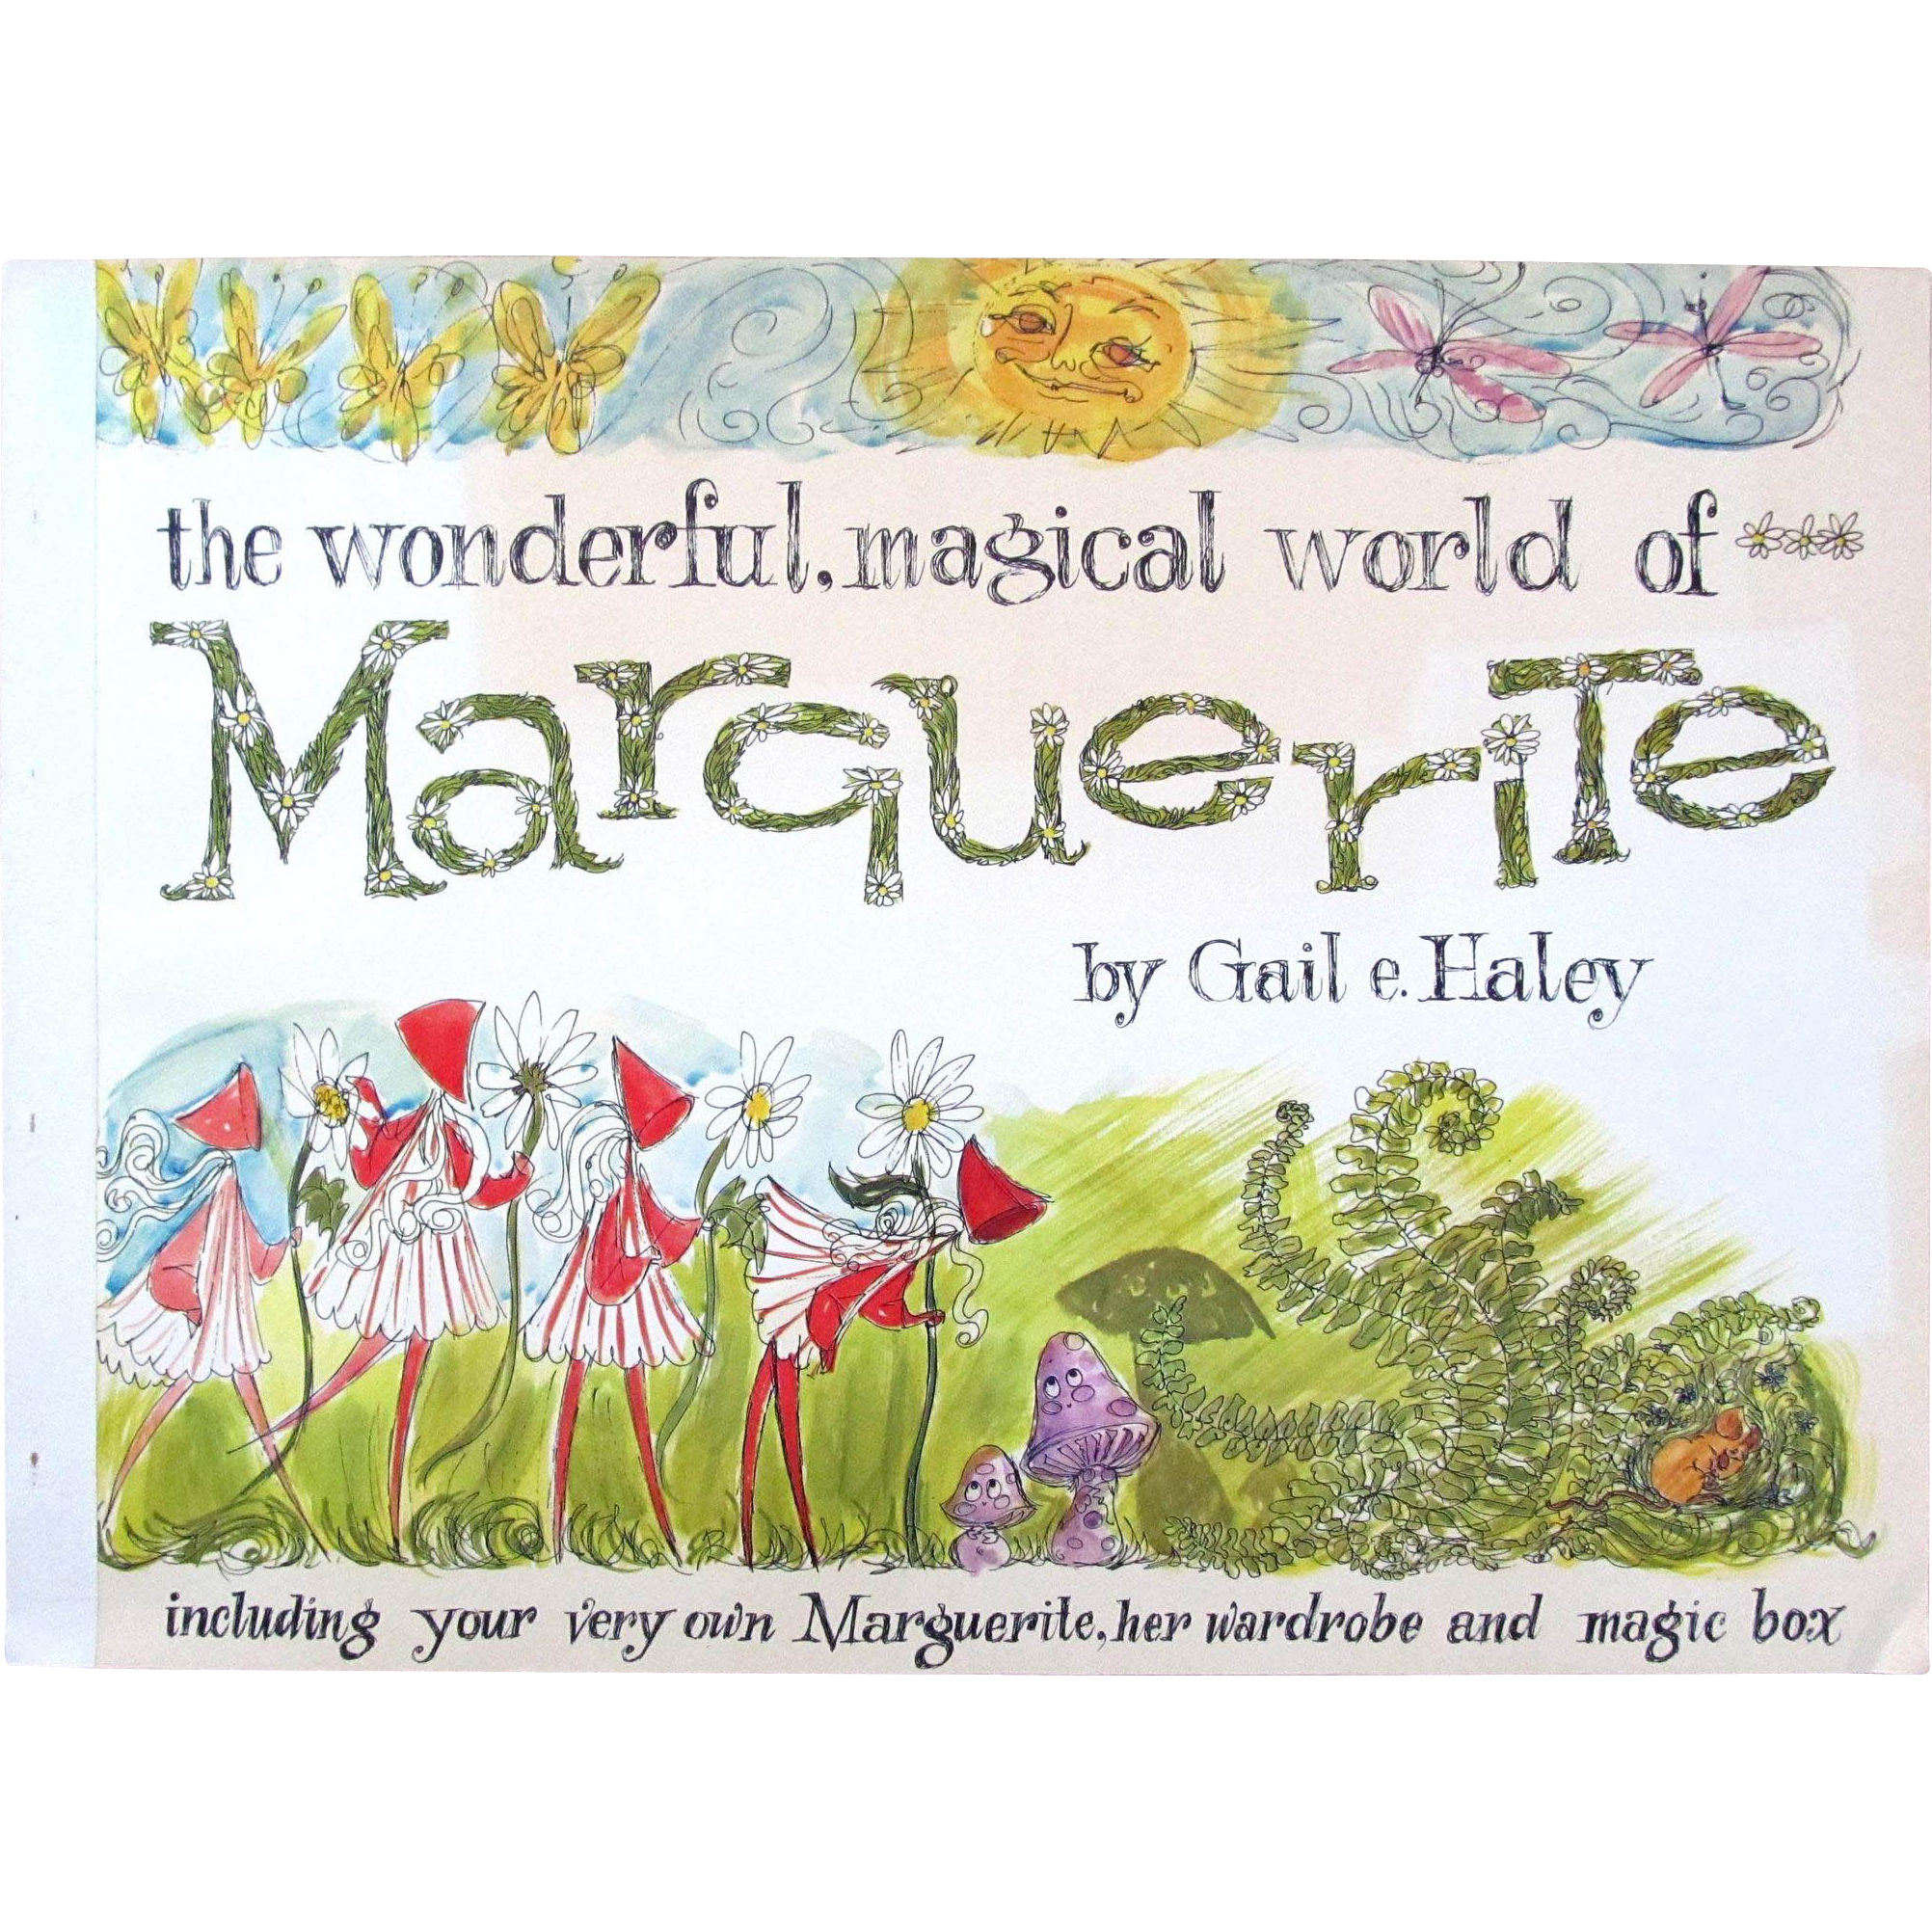 SALE Vintage 1964 Mint Book MARGUERITE by Gail Haley with